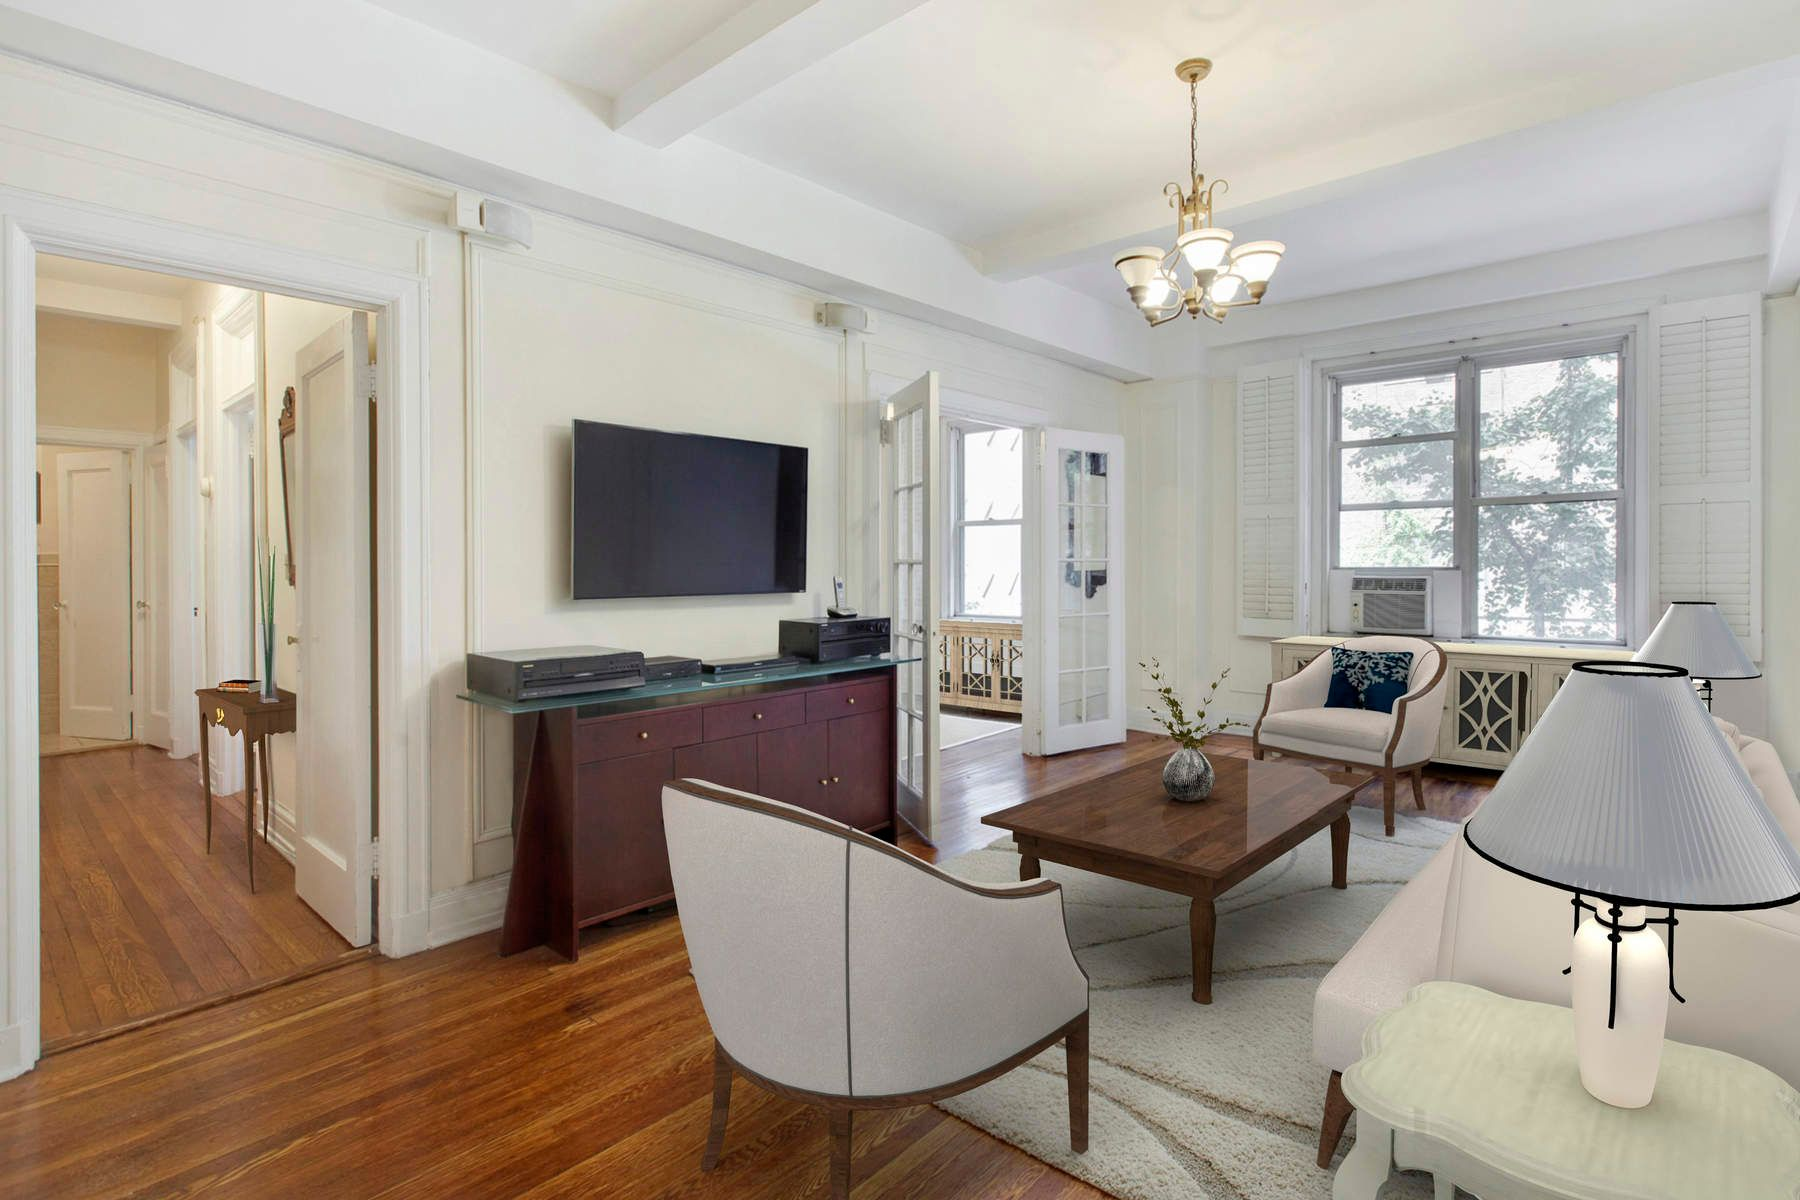 Co-op for Sale at Perfect 2BD 1.5BA Midtown East 150 East 49th Street Apt 3A, Midtown East, New York, New York, 10017 United States